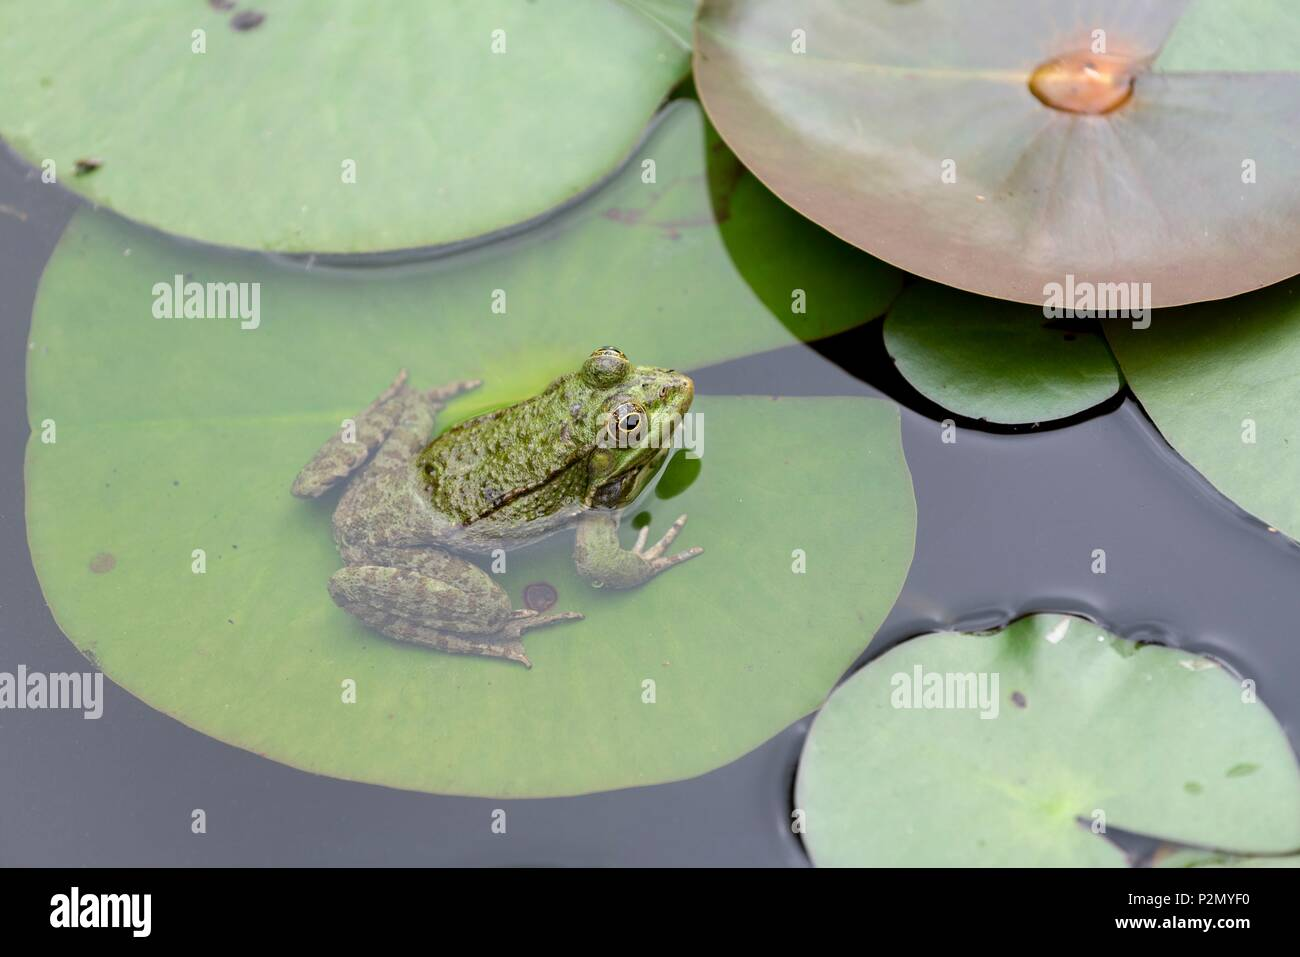 France, Tarn, Cordes sur Ciel, labelled the Most Beautiful Villages of France, The Gardens of Paradise, water lily, common water frog (Pelophylax kl esculentus) - Stock Image